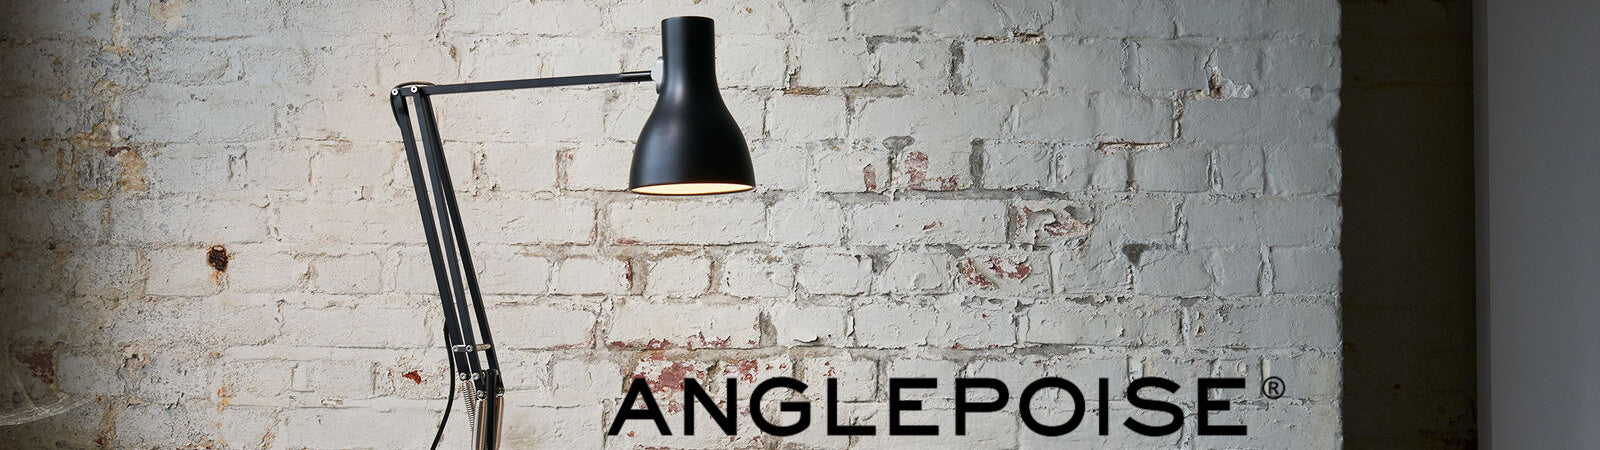 Anglepoise Iconic British Lighting and Lamps Available at Sportique.com